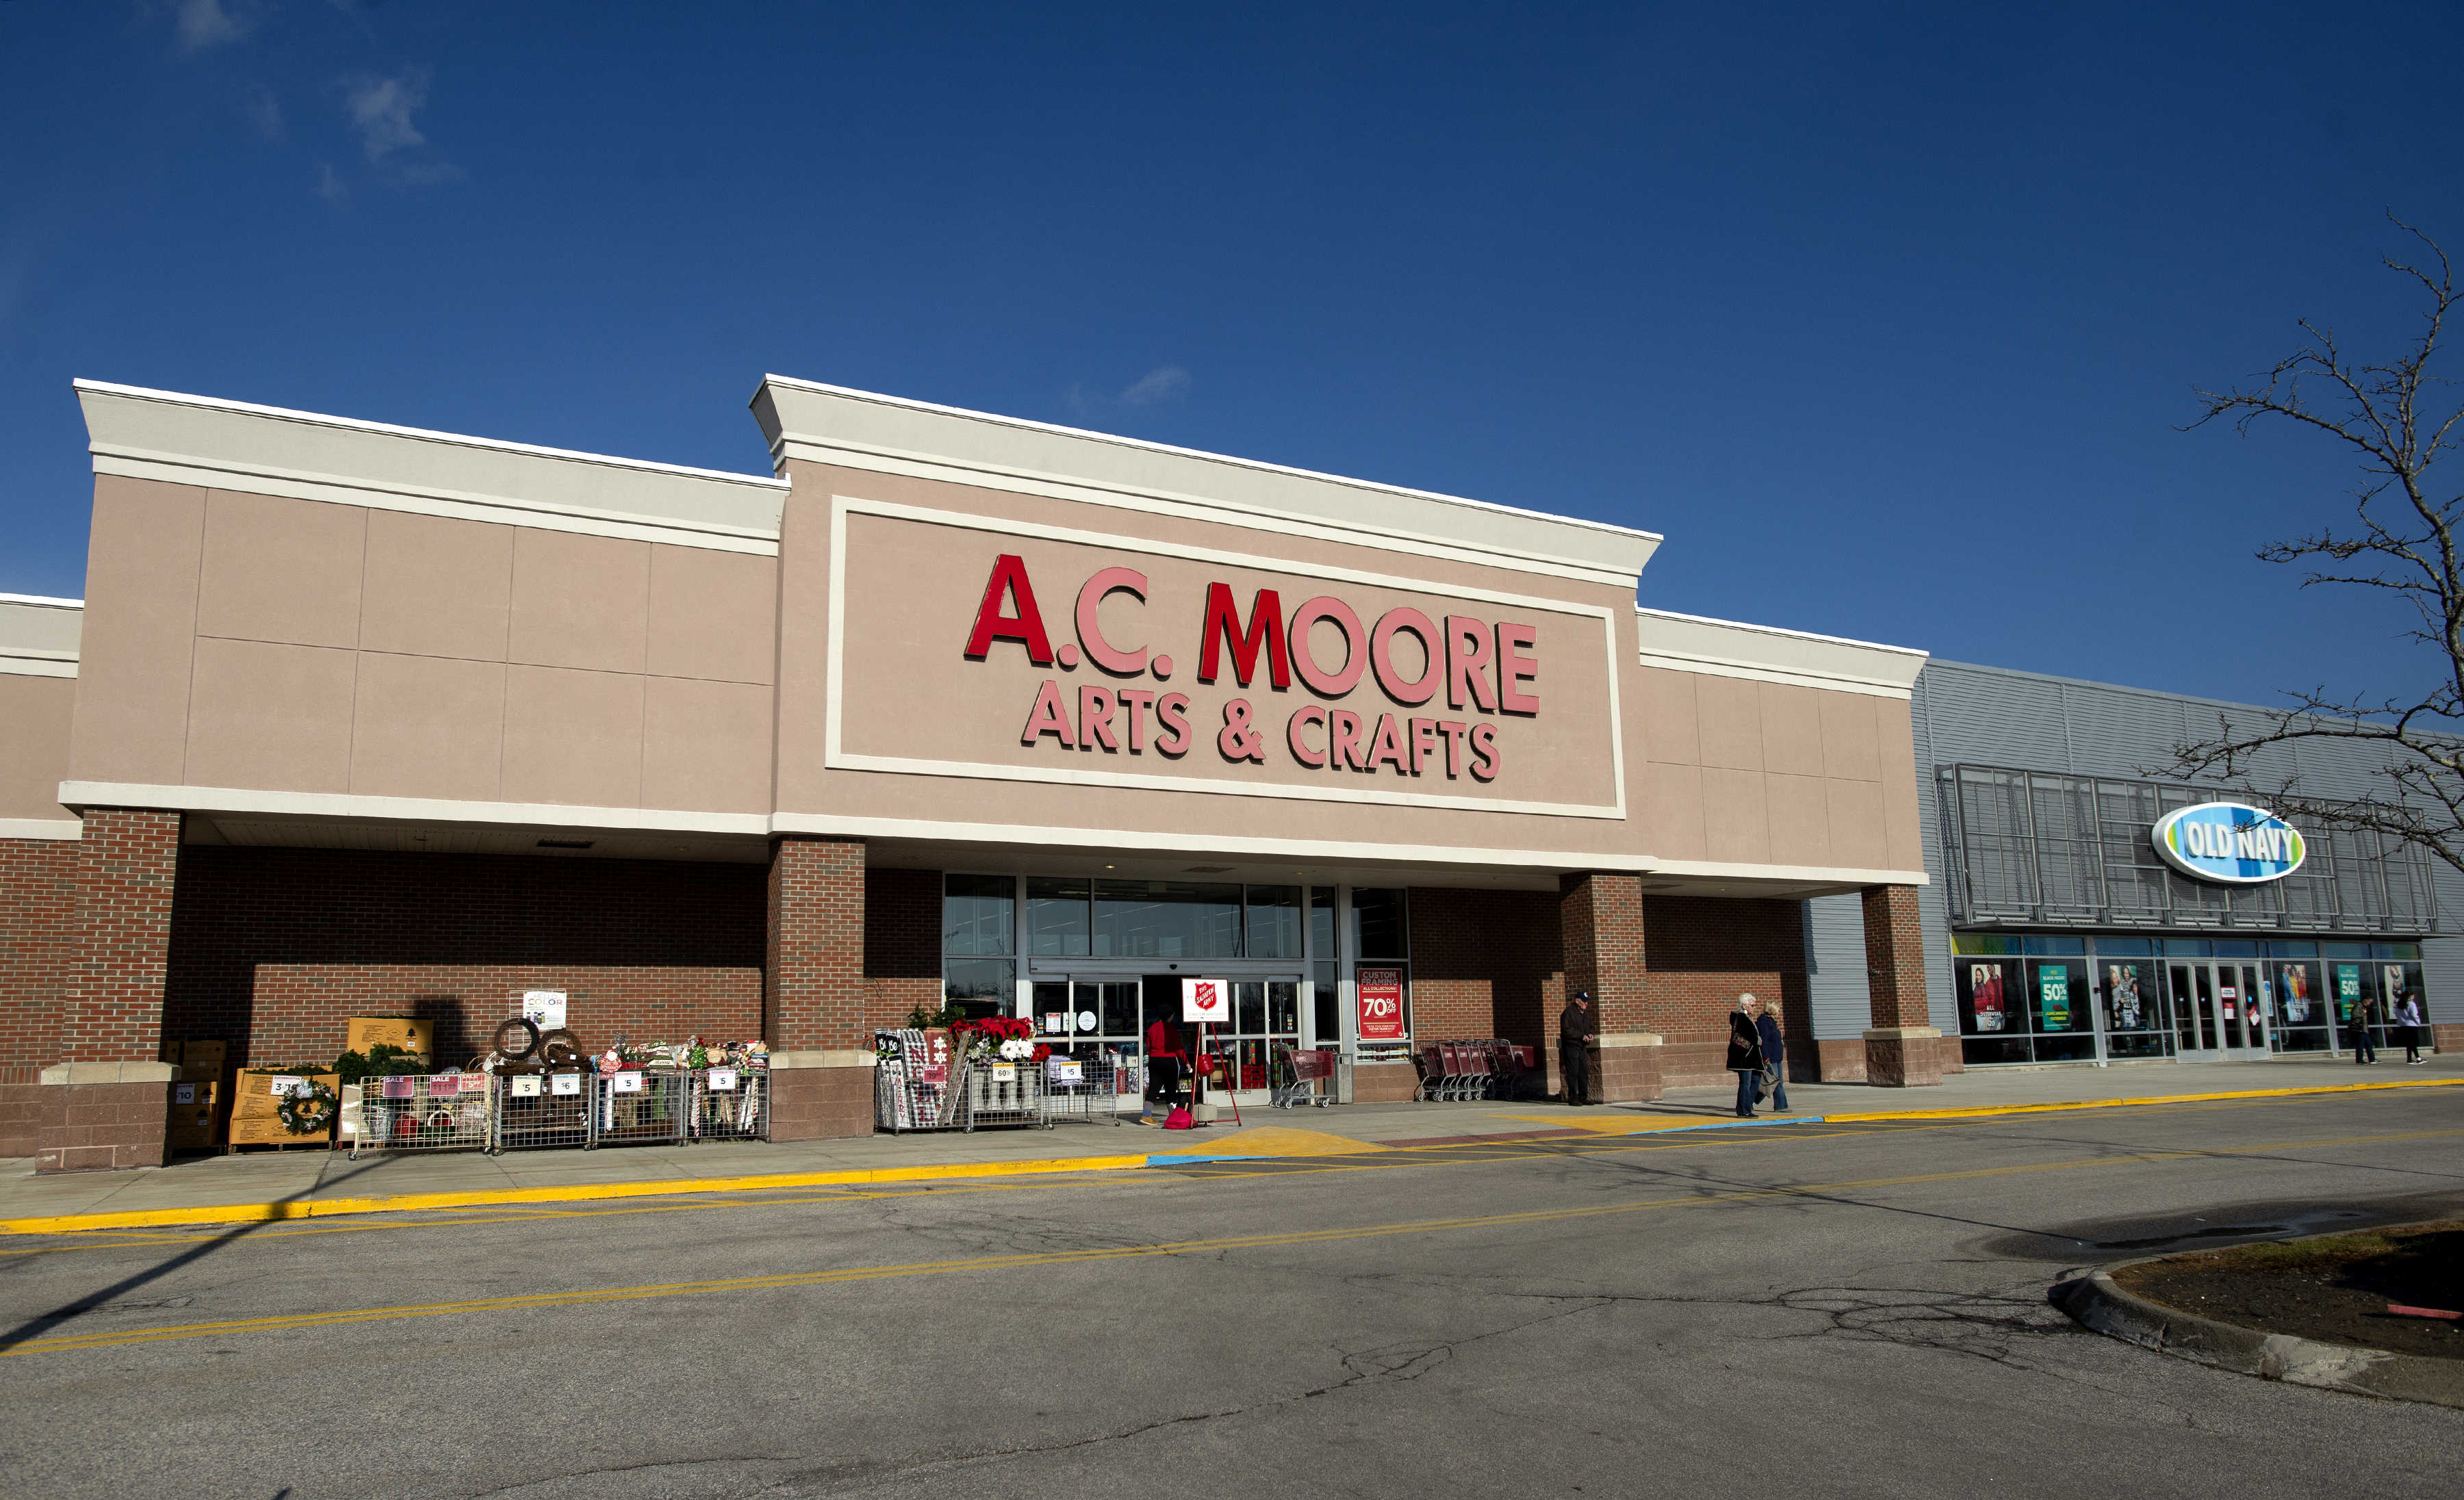 Michael's crafts store to open in former AC Moore space in Bangor